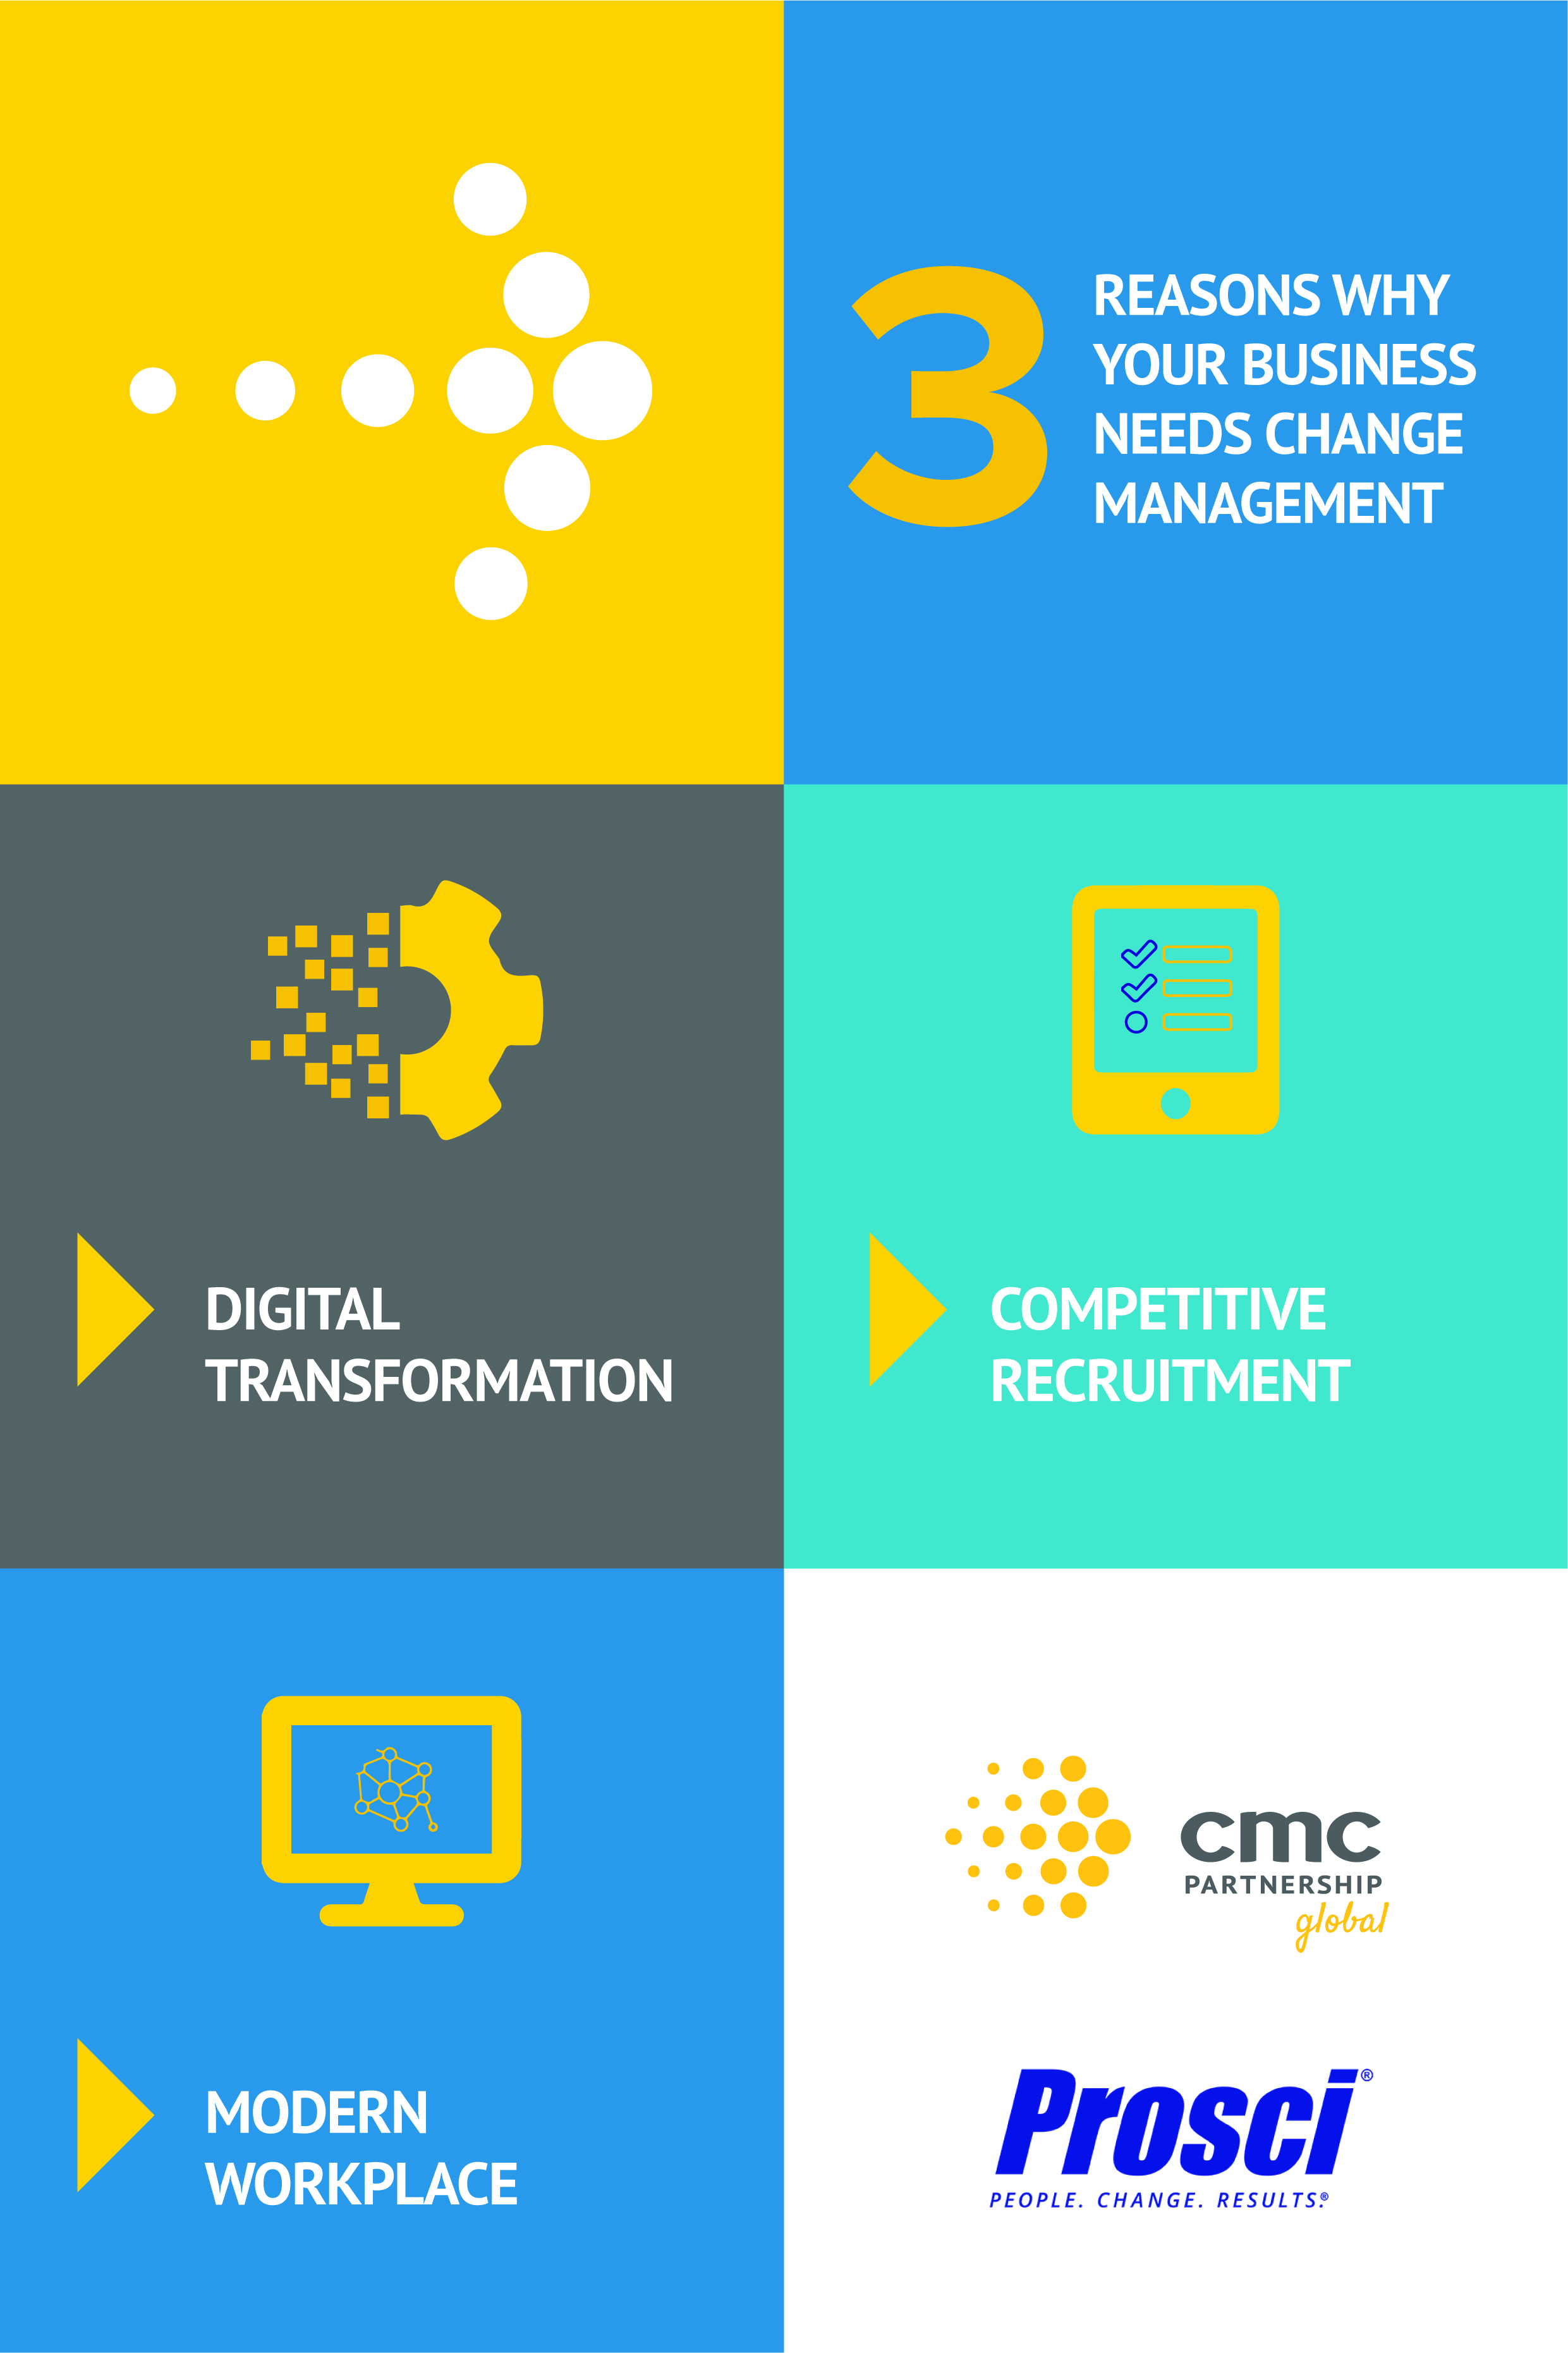 CMC-Global-3-reasons-why-infographic-1